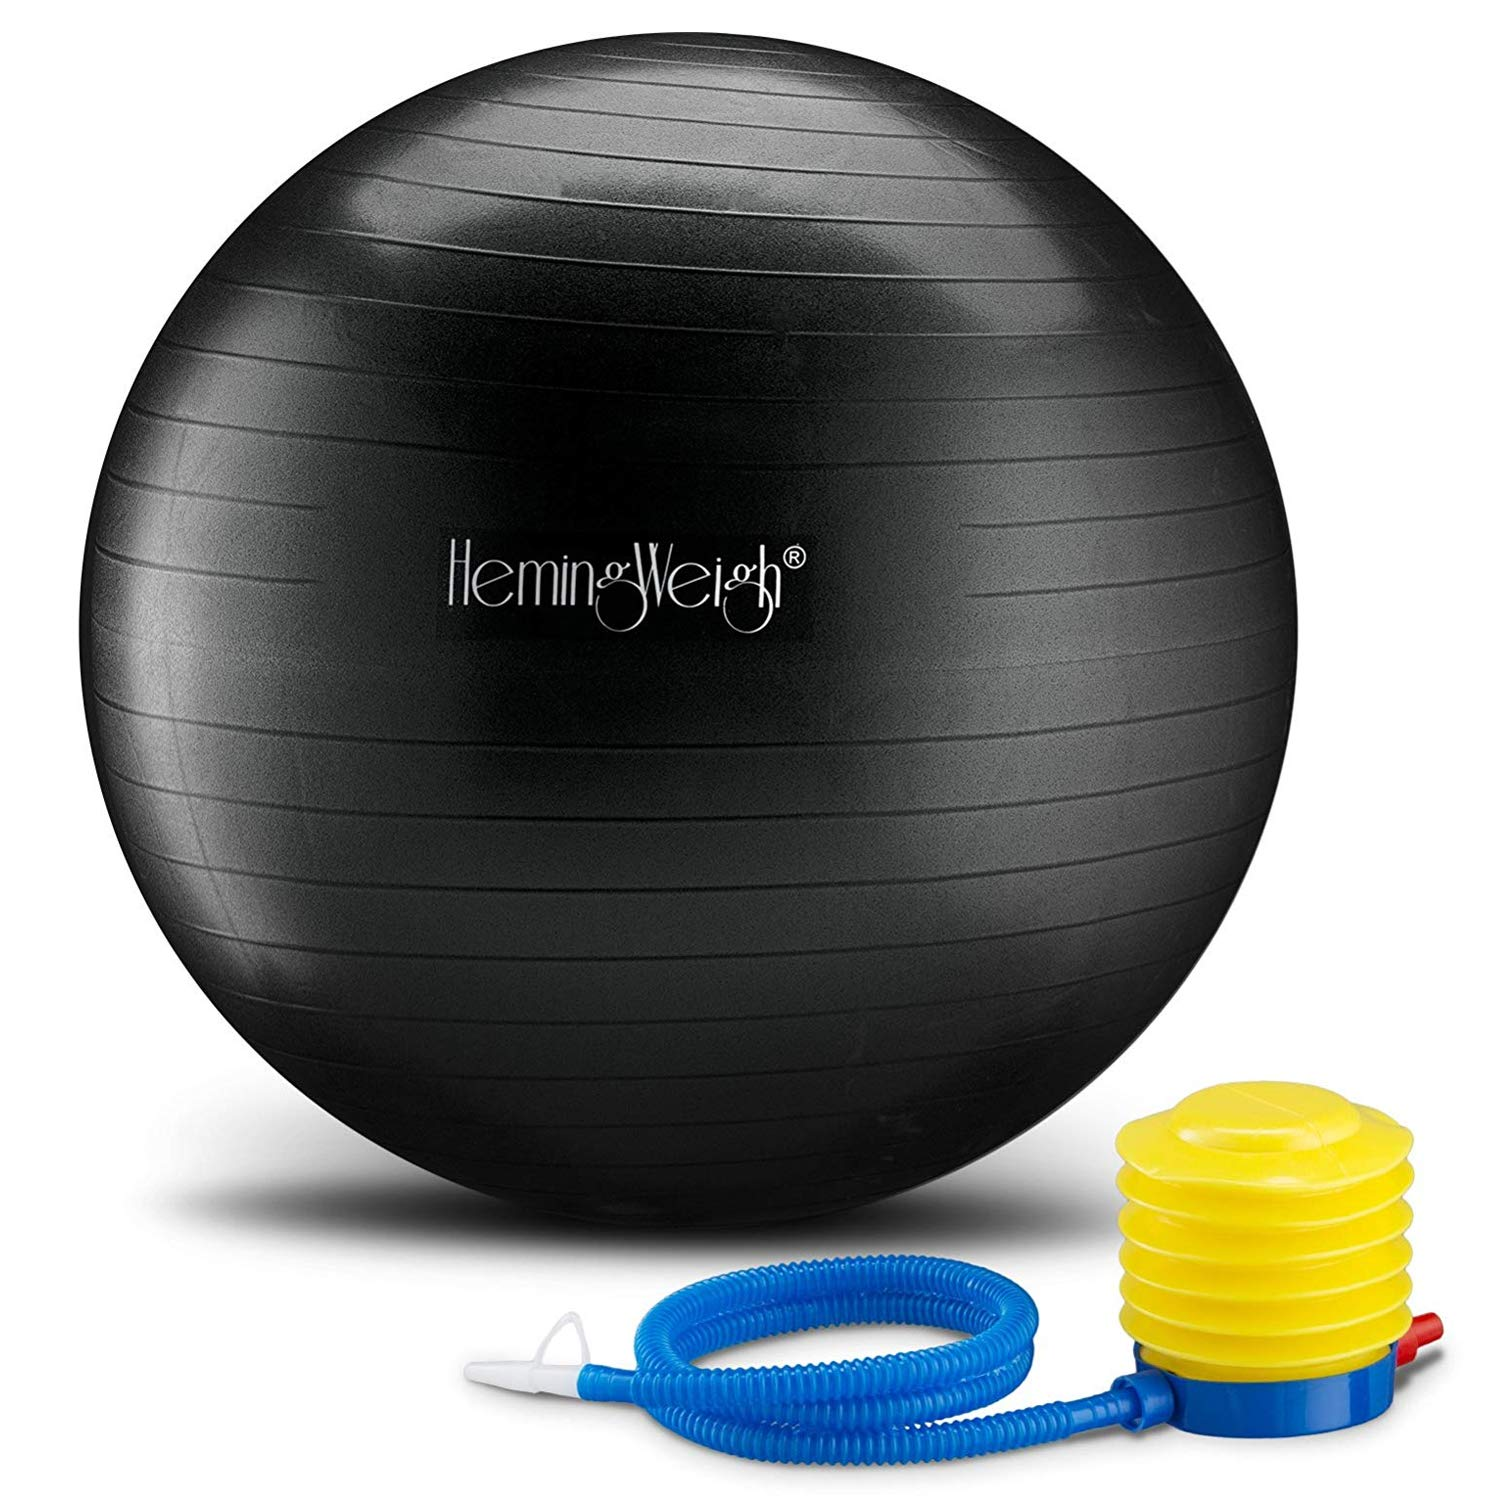 HemingWeigh Static Strength Exercise Stability Ball with Foot Pump | Perfect for Fitness Stability and Yoga | Helps Improve Agility, Core Strength, and Balance (Black, 75cm)